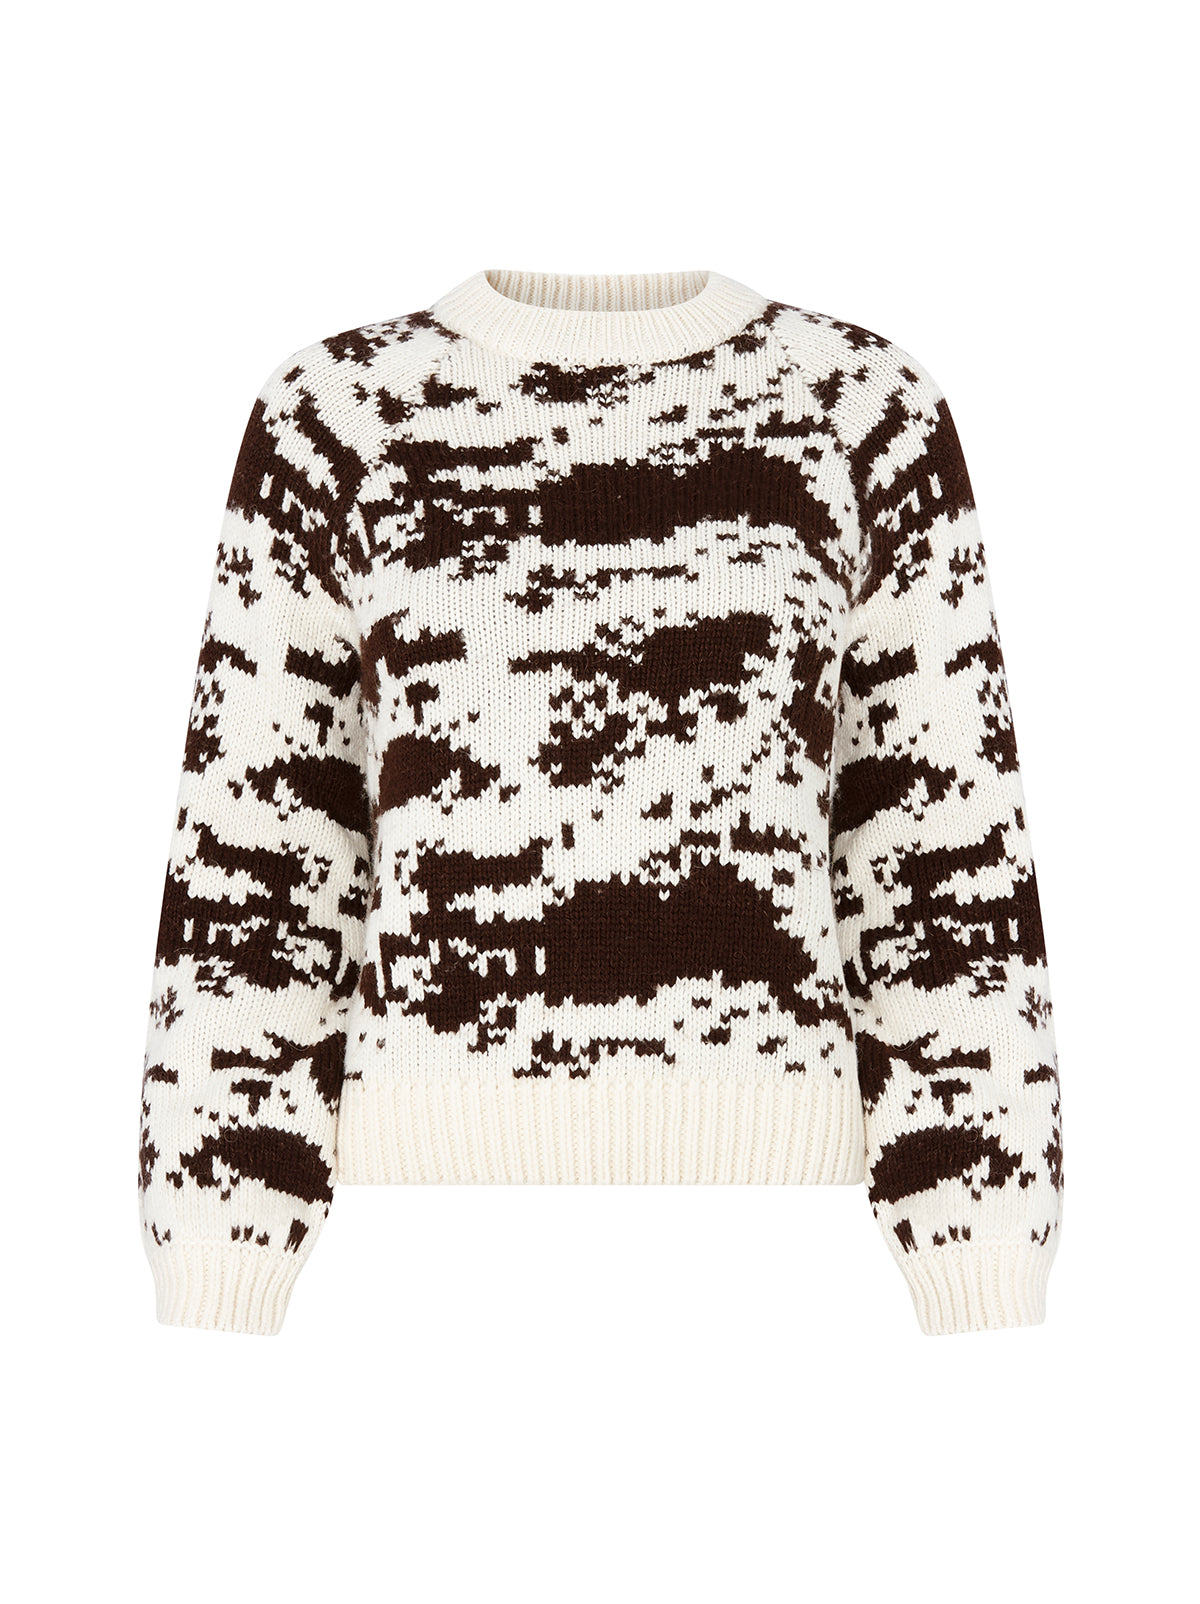 Deanna Cow Print Jumper by KITRI Studio